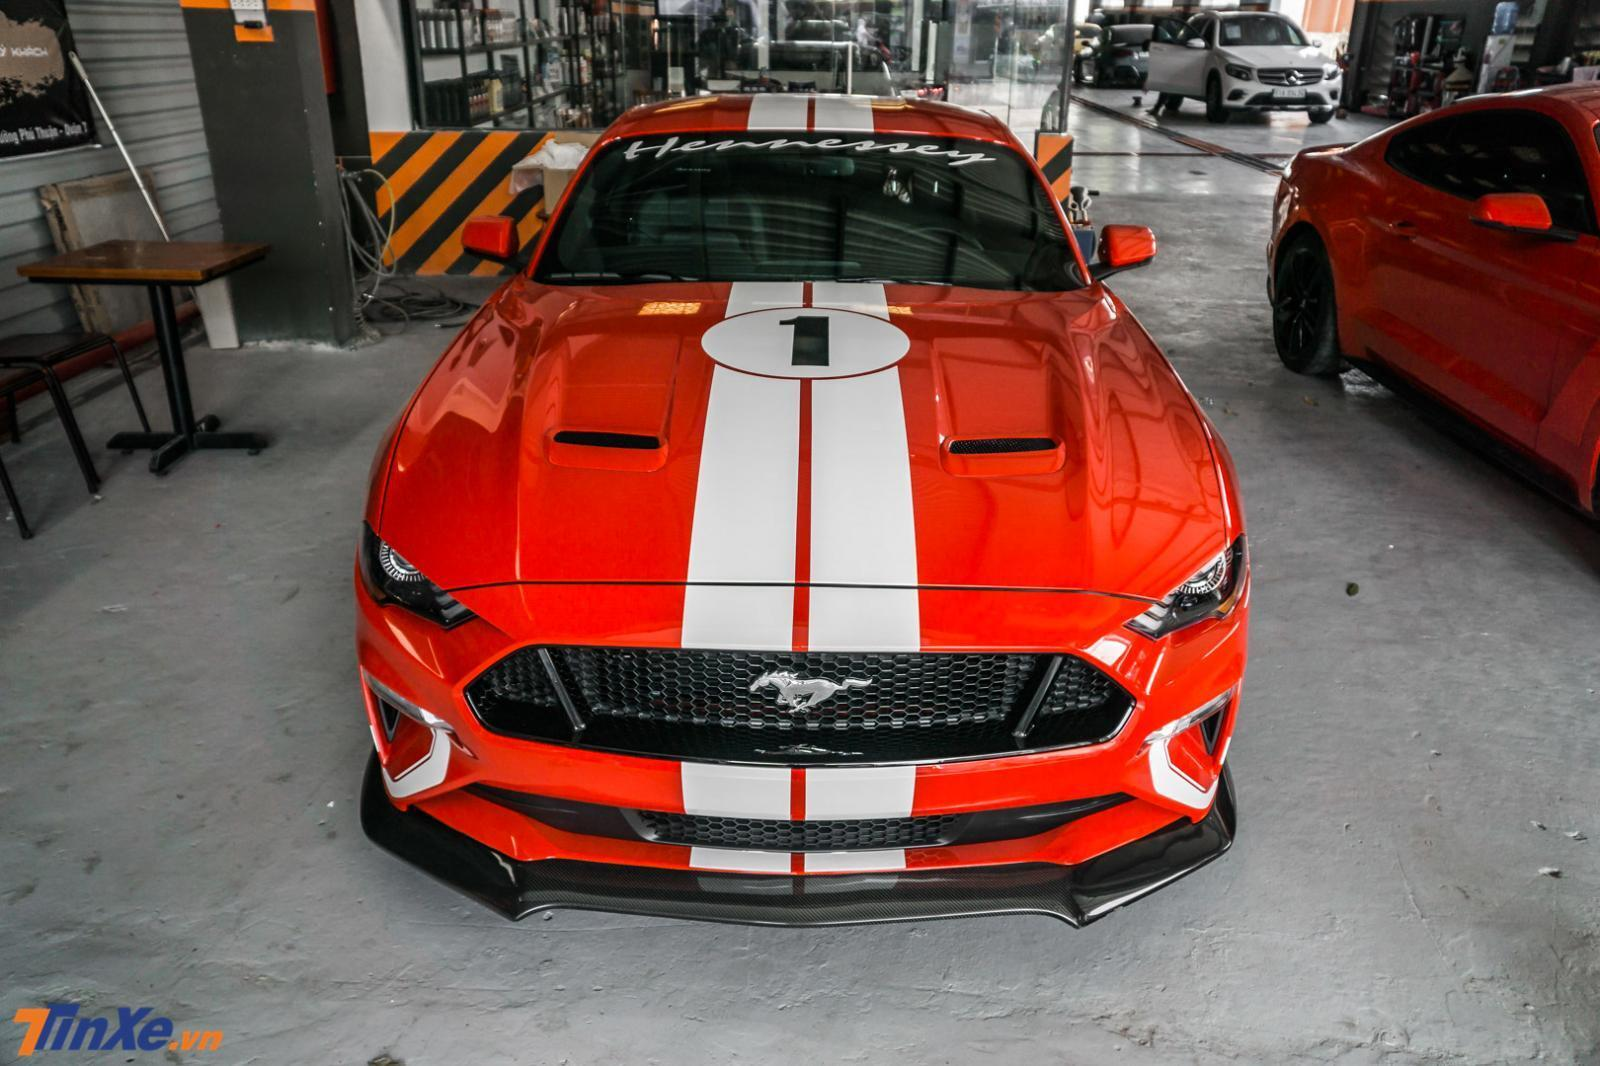 danh-gia-ford-mustang-do-hennessey-doc-nhat-viet-nam-ngua-hoang-day-cong-suat-808-ma-luc-3.jpg